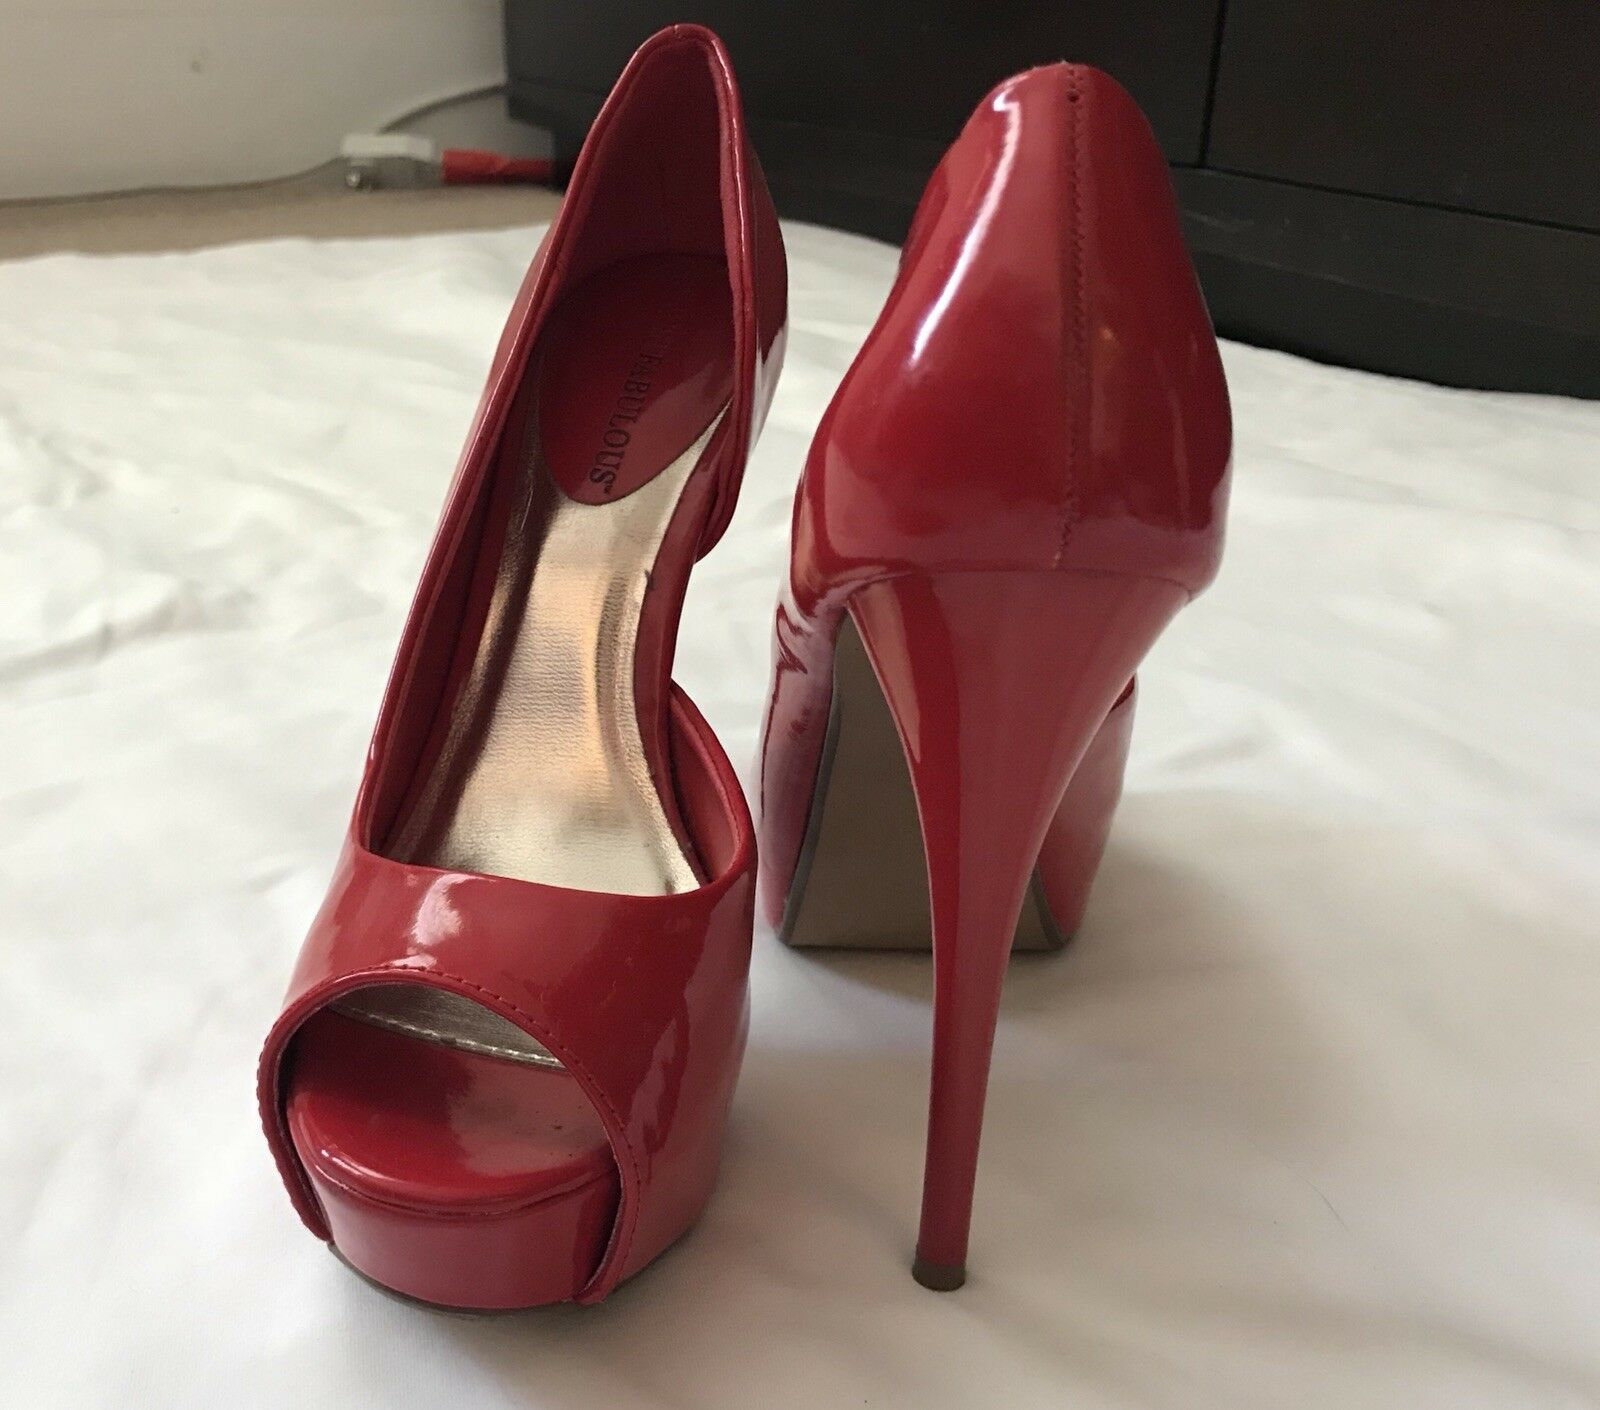 Gentleman/Lady Just Fab Best-selling Red Pumps Size 7 Best-selling Fab worldwide auction Exquisite processing 61a181